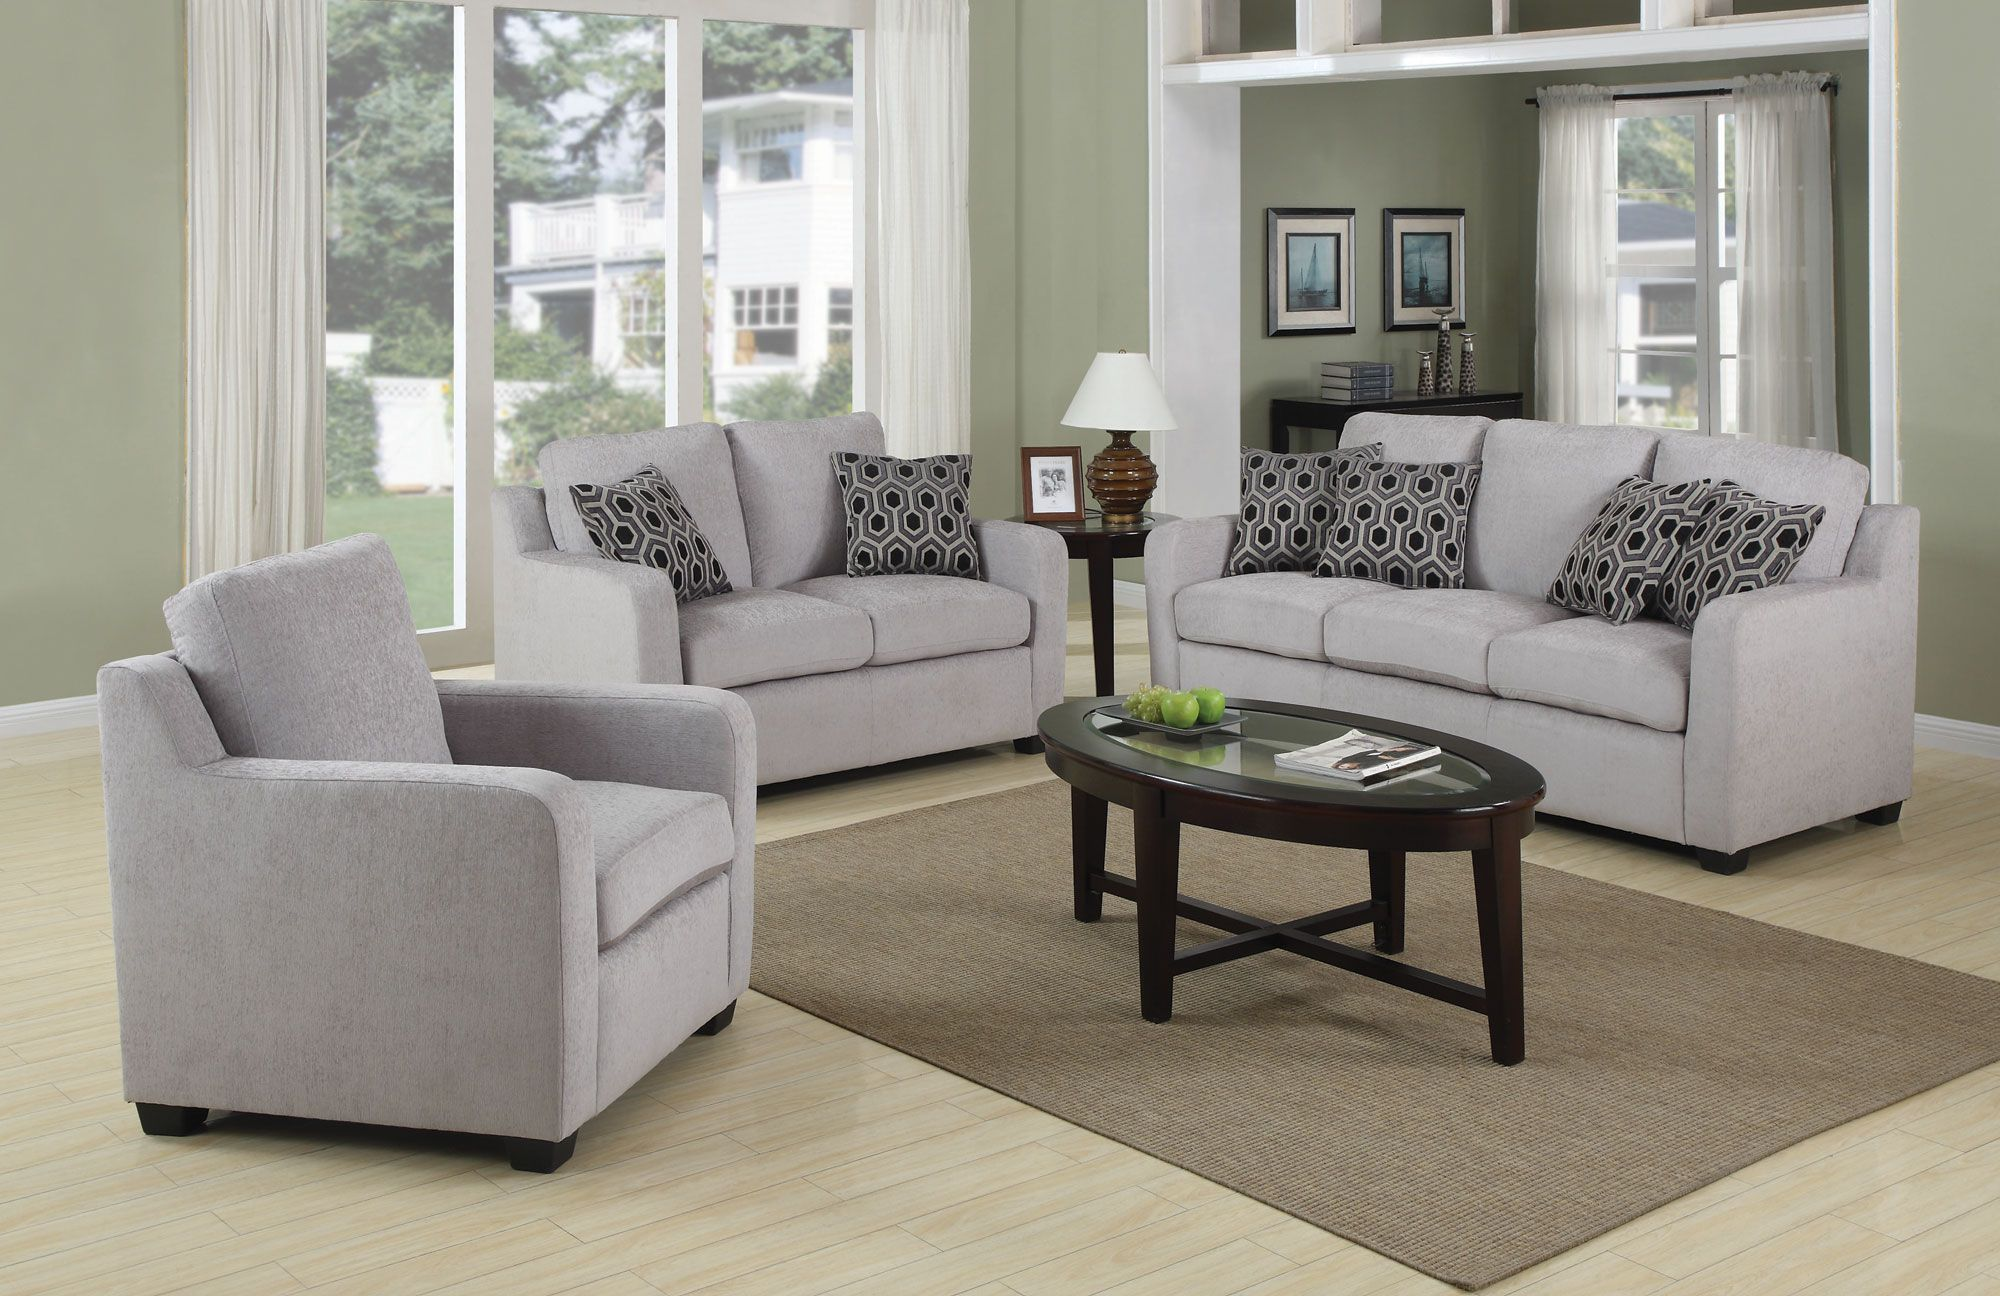 Master simple-wooden-sofa-designs-for-drawing-room-living-room-simple-living-room- design-ideas-pros-and-cons-of-laminate-wood-flooring-living-room-ideas-with-grey-  ... sofa designs for drawing room